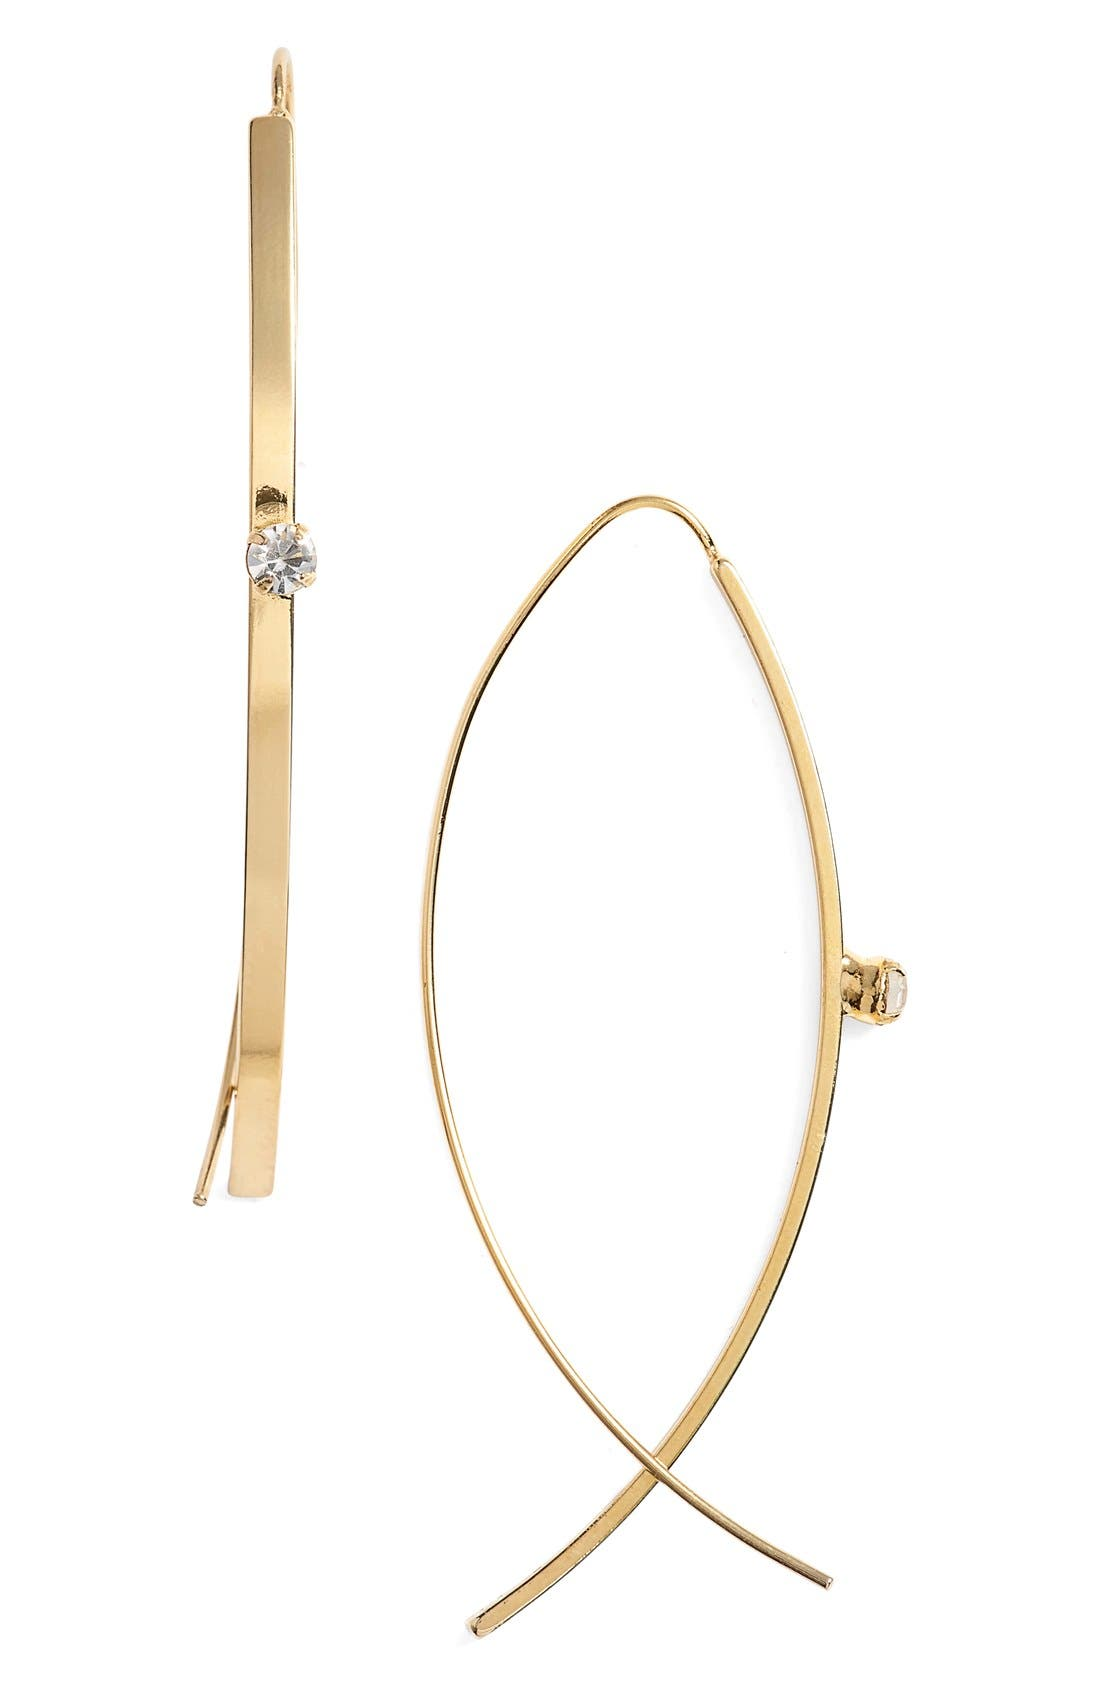 Main Image - Jules Smith Open Hoop and Pronged Bar Earrings